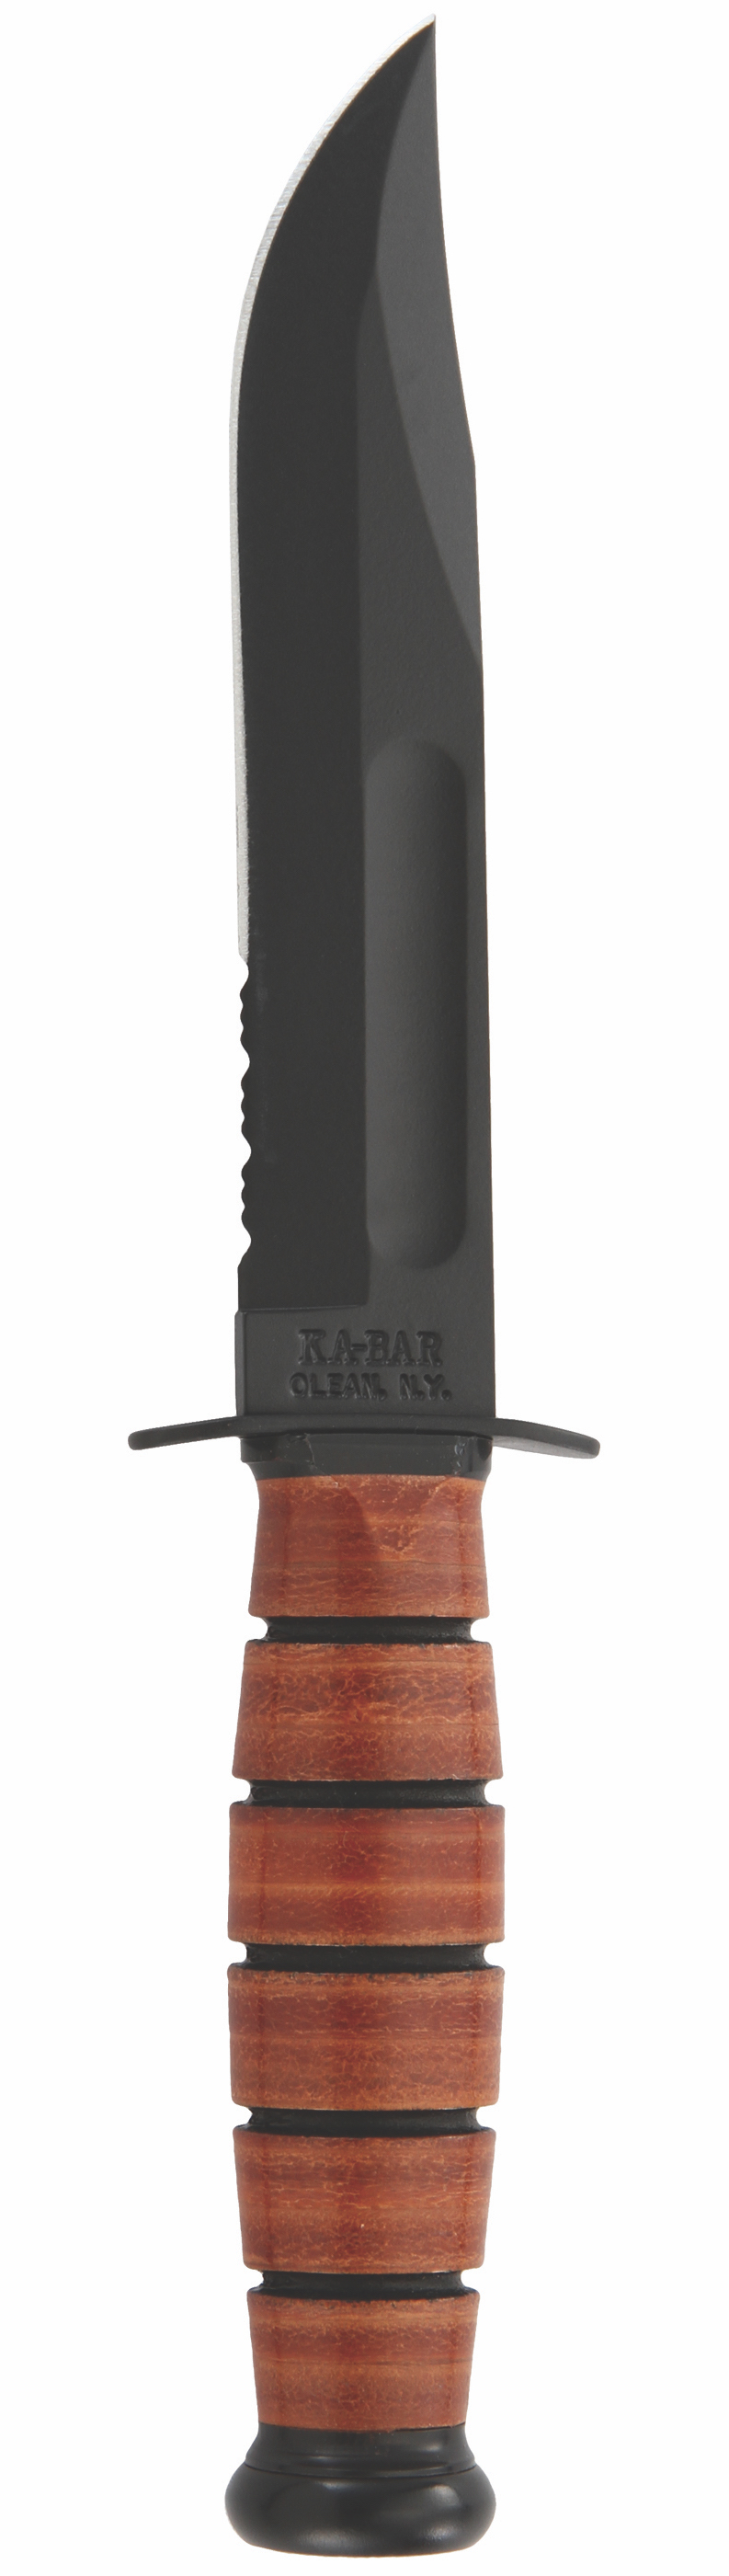 1252 - KA-BAR SHORT, USMC, BROWN LEATHER SHEATH, SERRATED EDGE